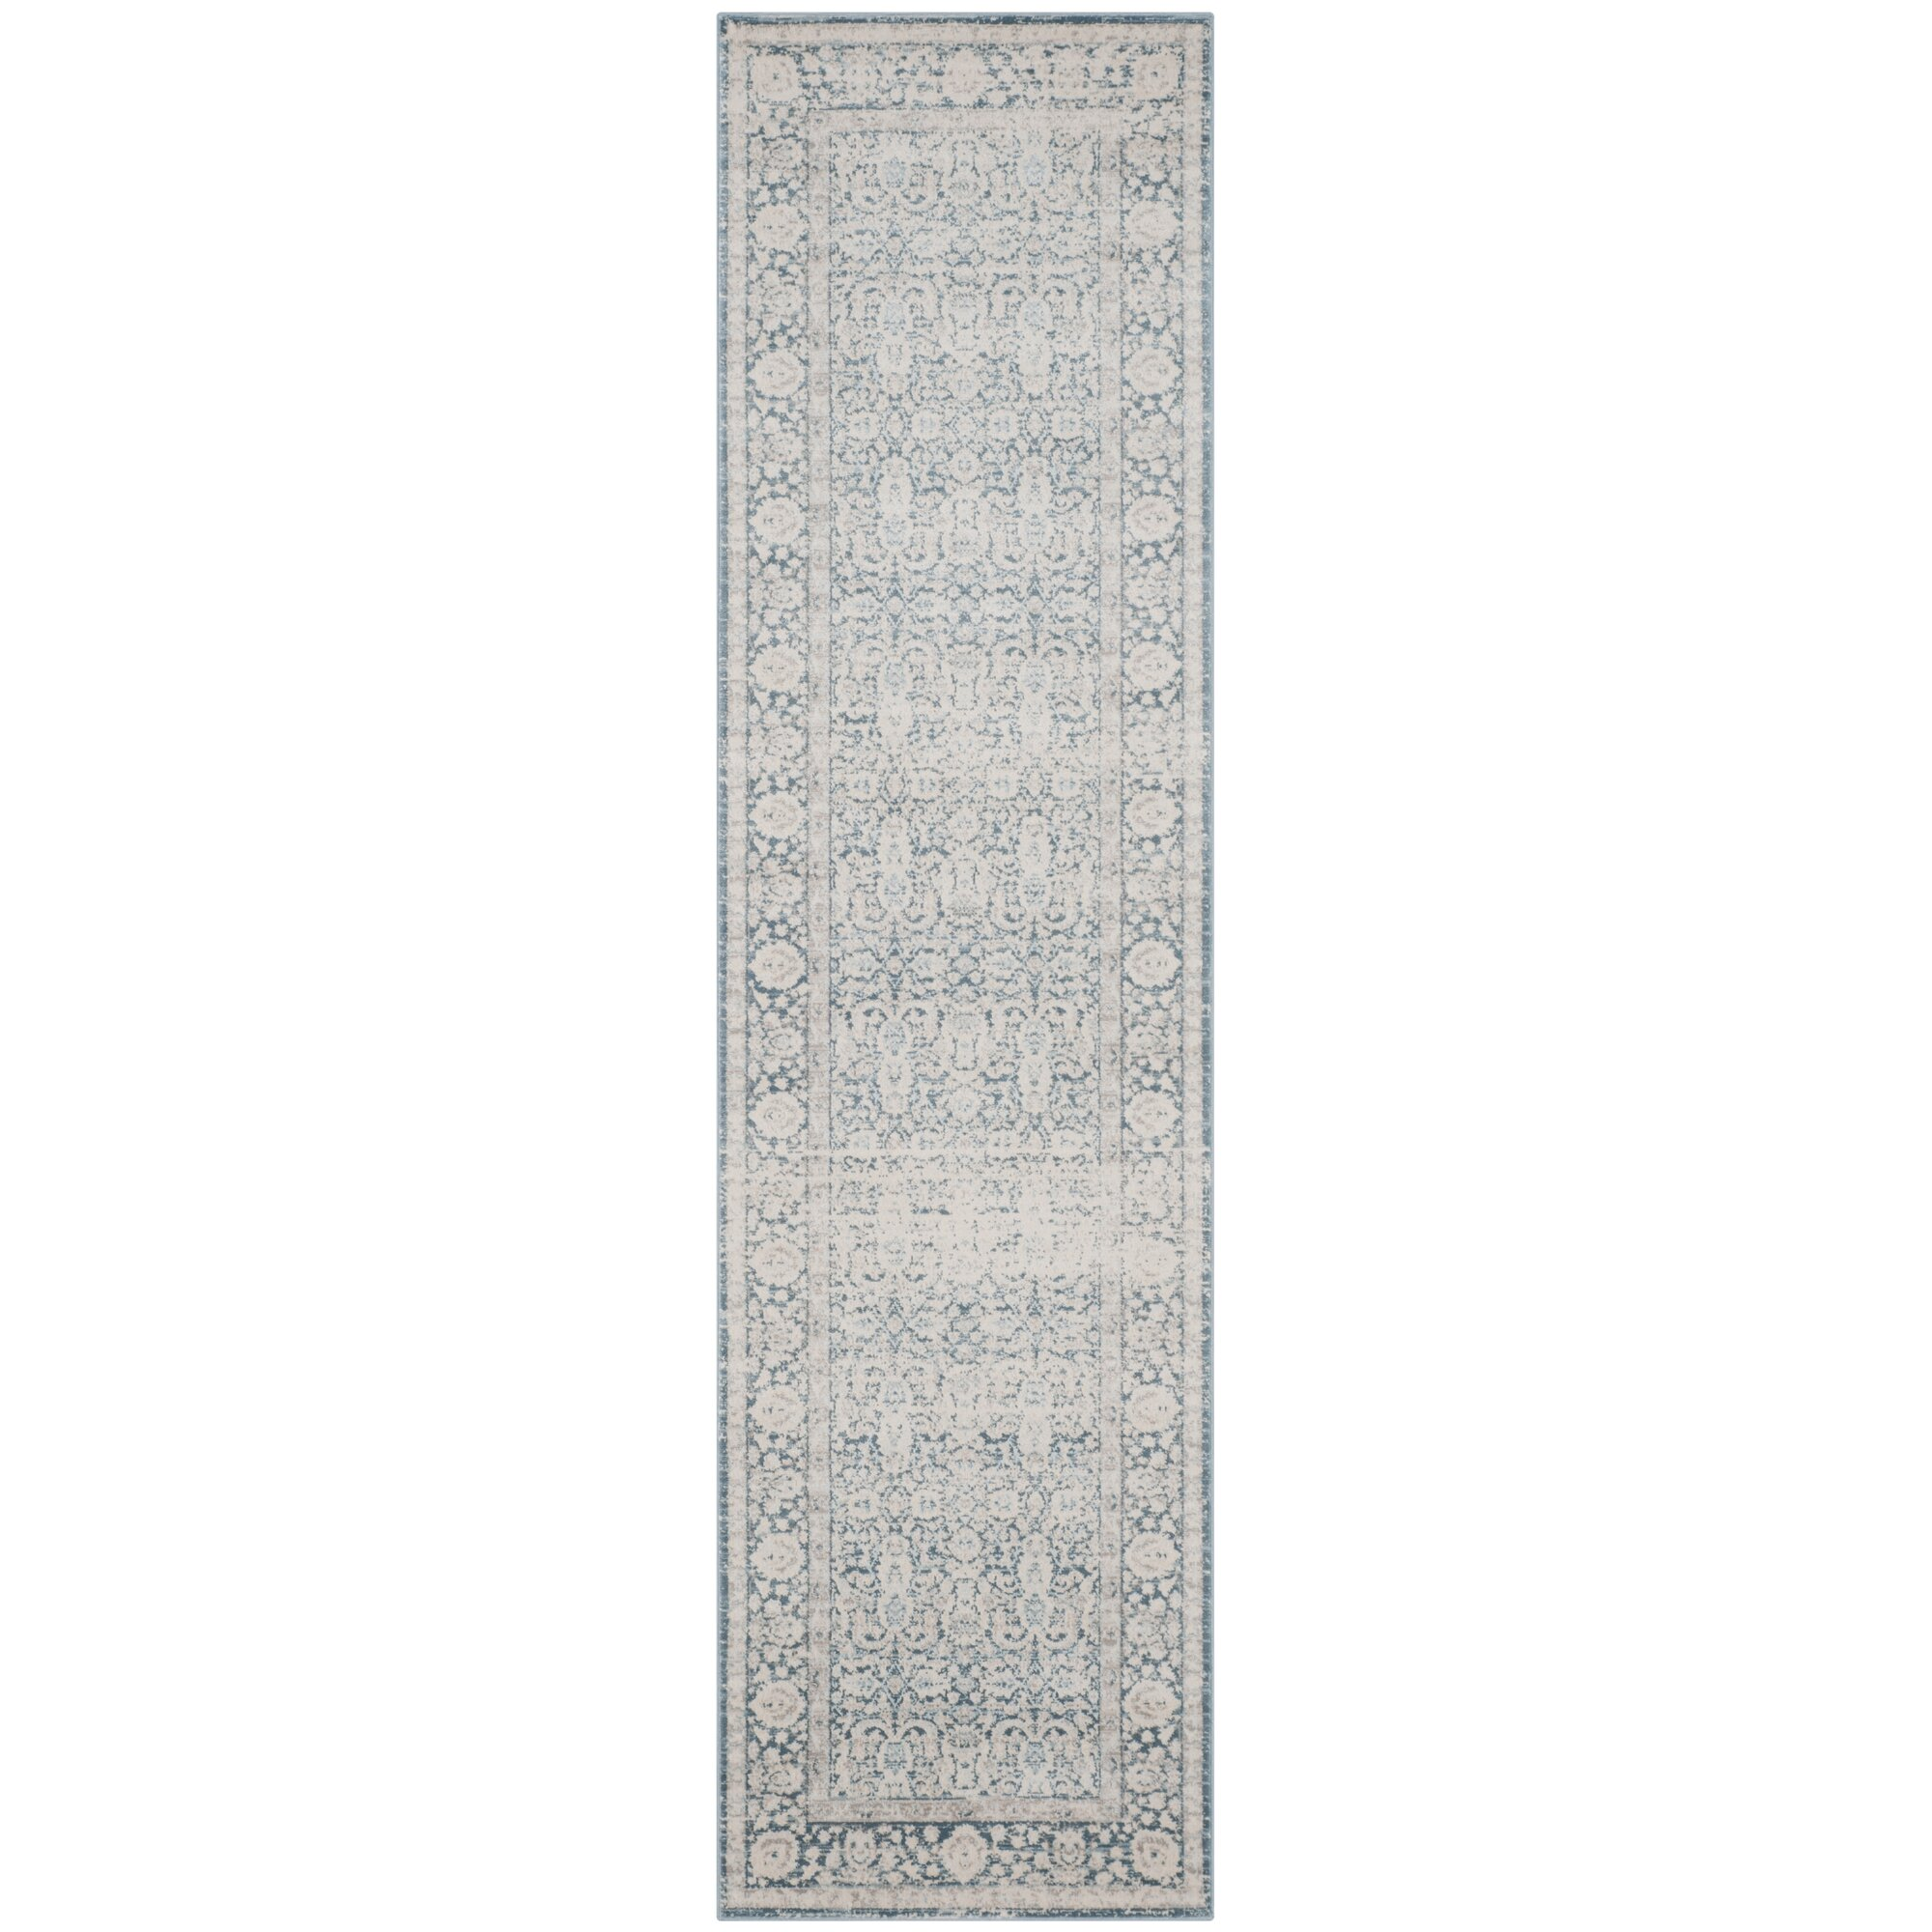 Safavieh Klara Blue Grey Area Rug Wayfair Co Uk